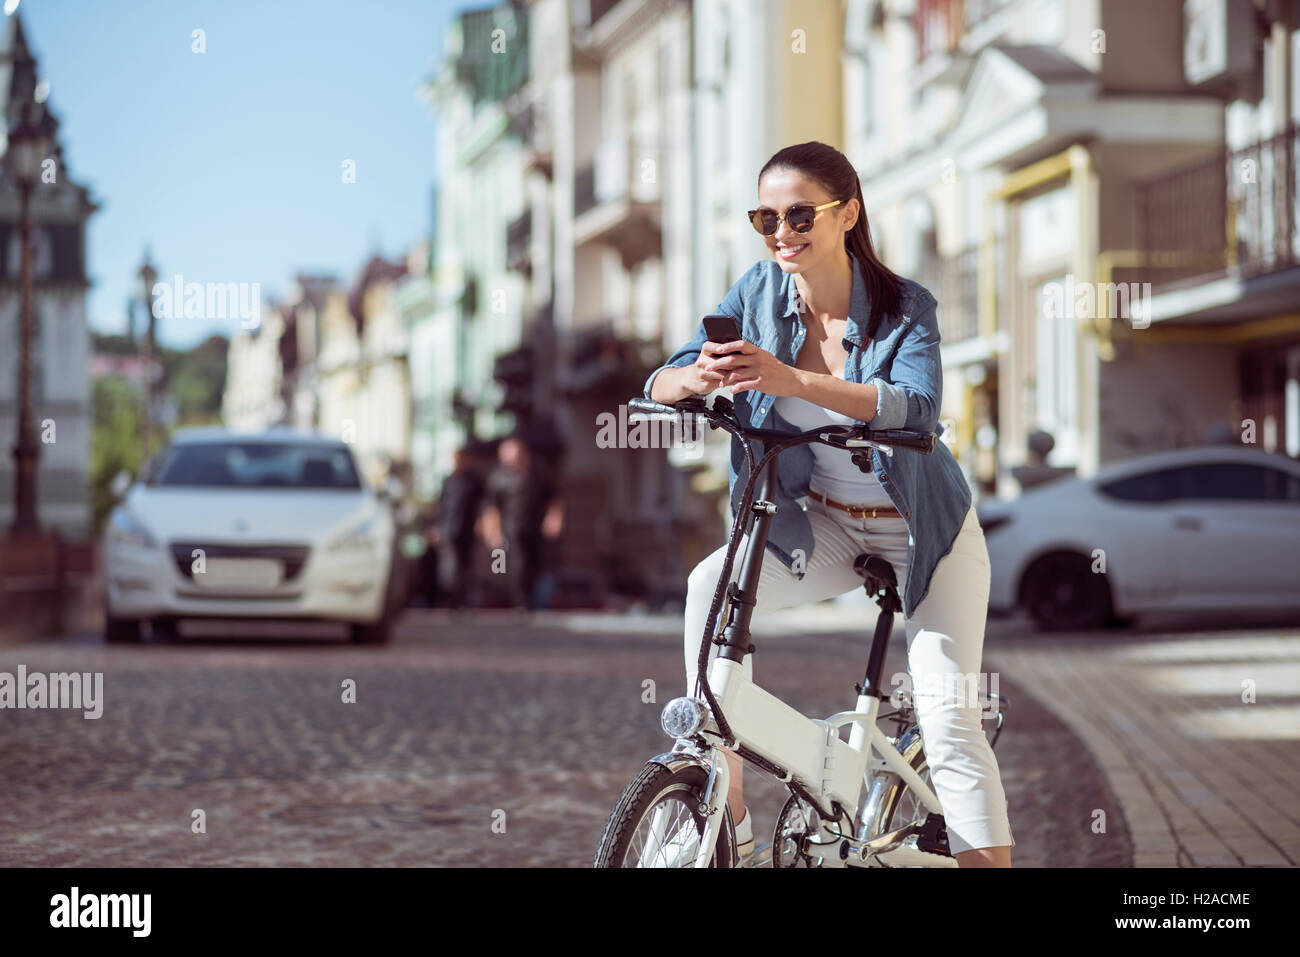 Positive woman riding a bicycle - Stock Image